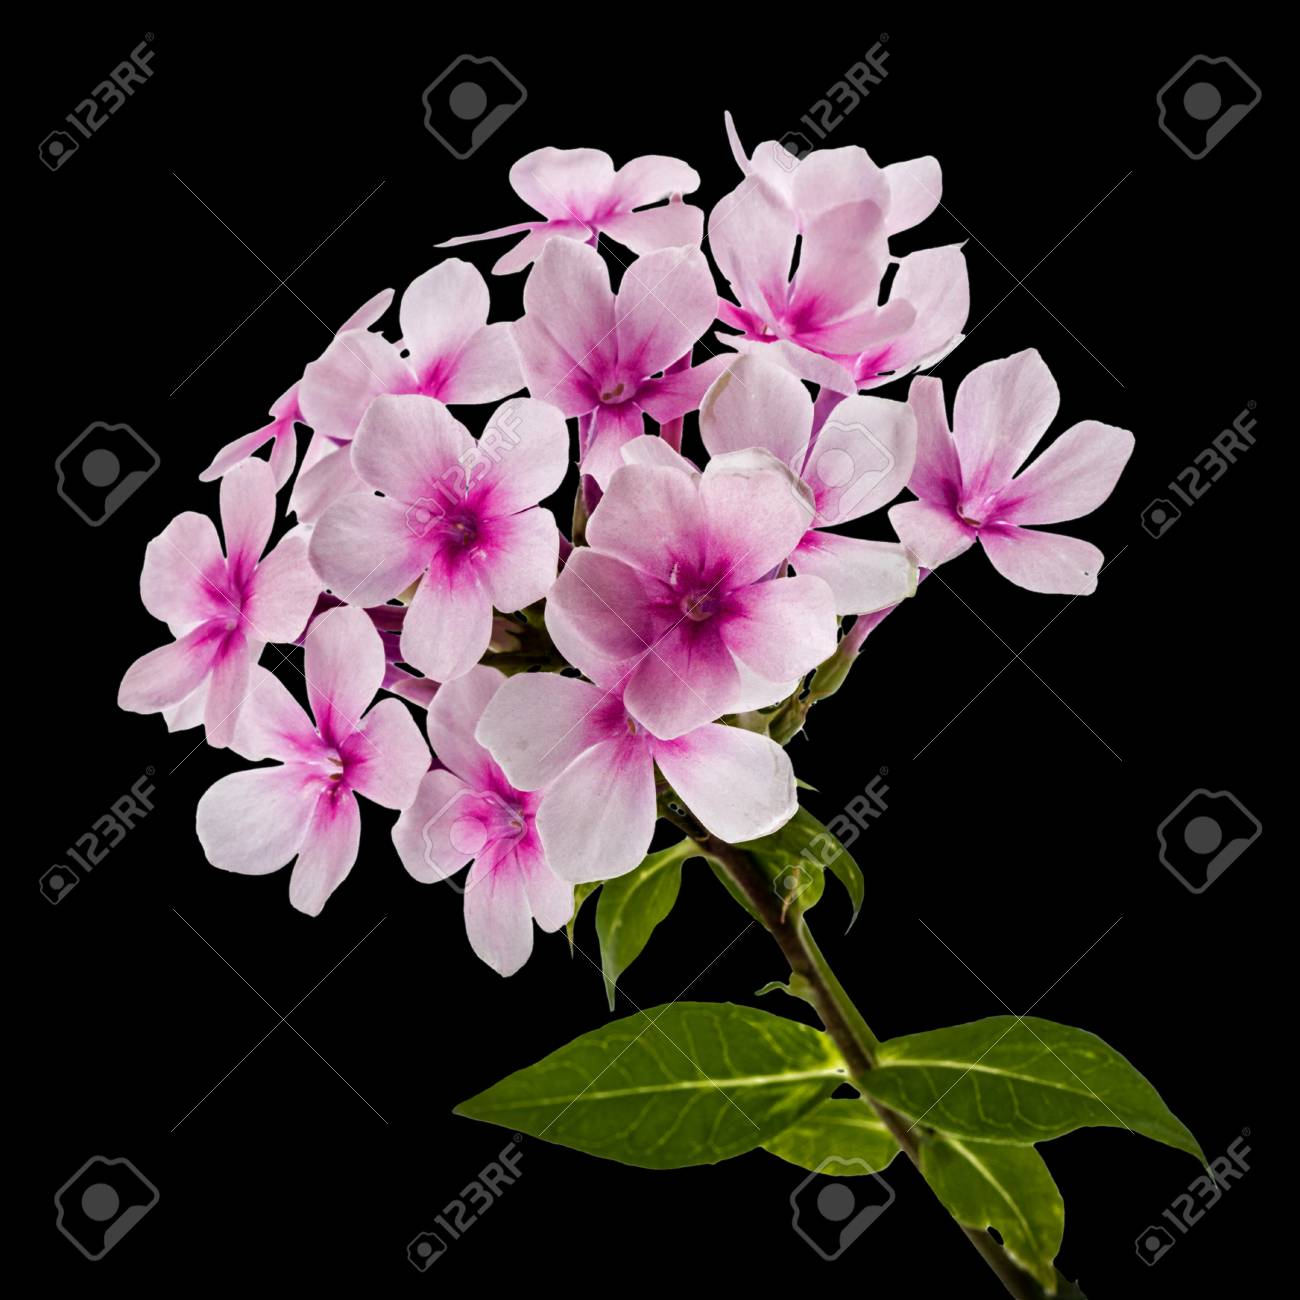 Pink Flower Phlox Isolated On Black Background Stock Photo Picture